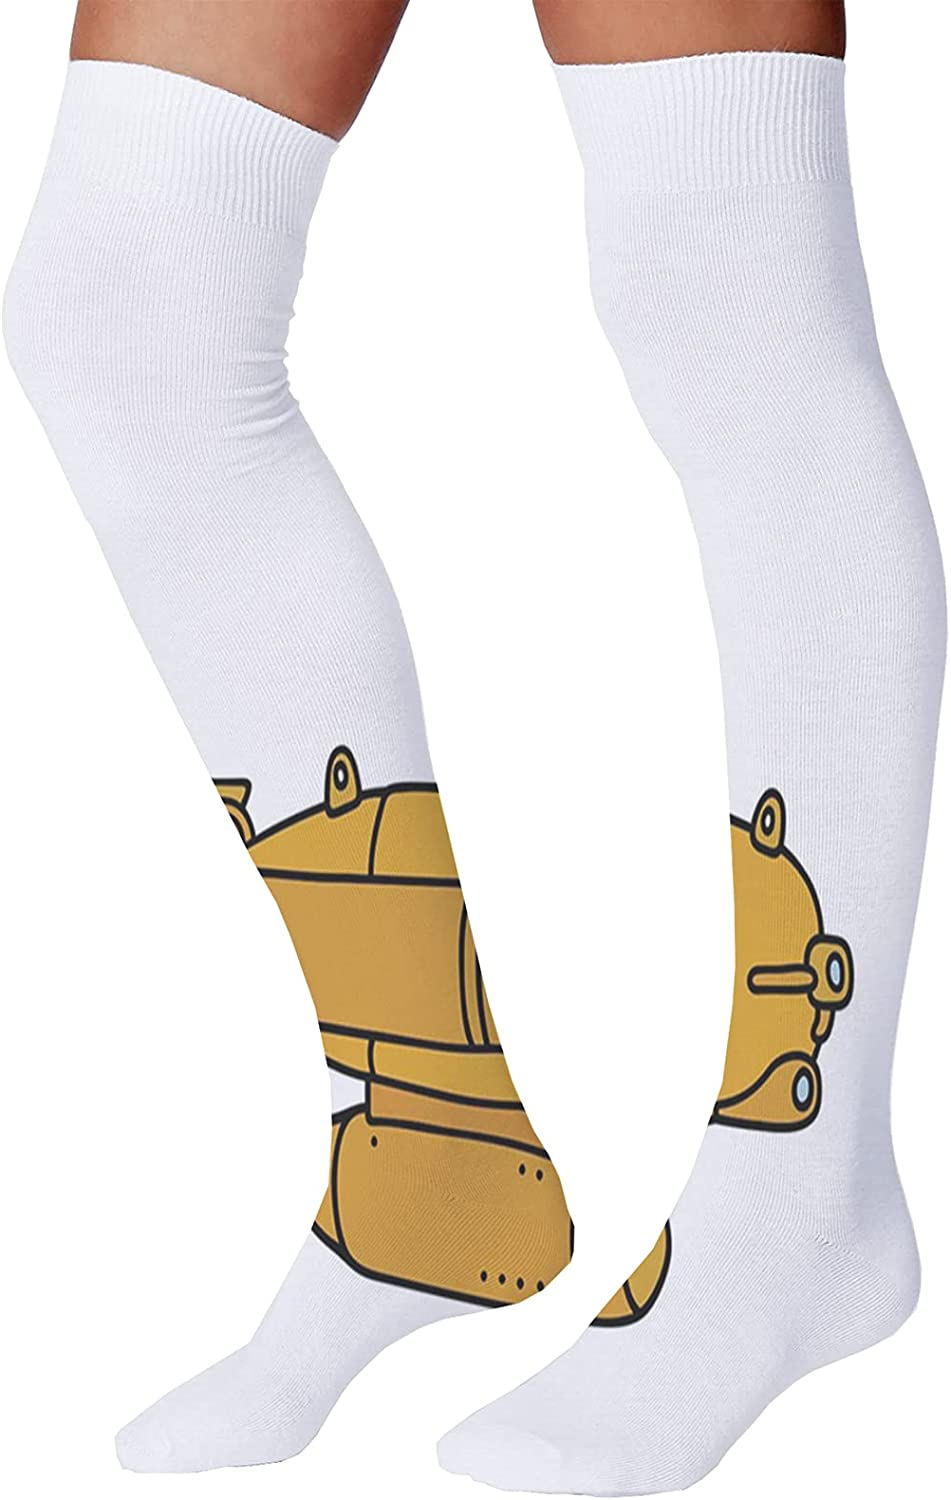 Men's and Women's Fun Socks,Abstract and Artistic Astrology Design with Man Woman Day and Night Concepts